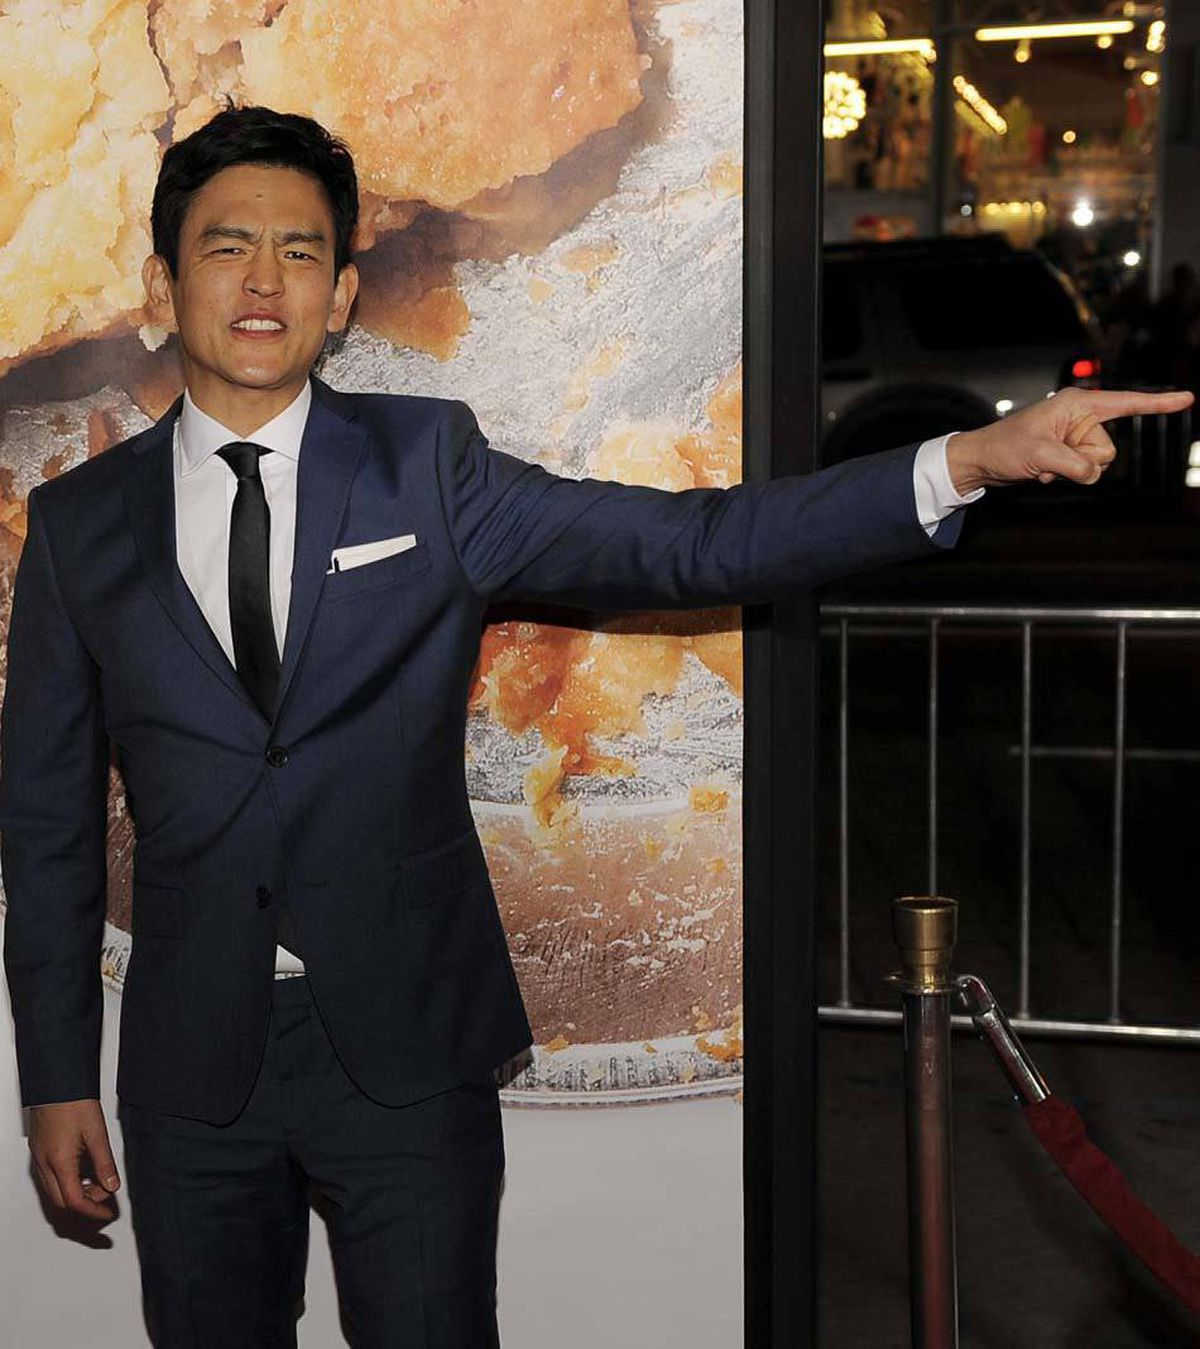 """Do not bother us here at the premiere of 'American Reunion' in Los Angeles on Monday!"" commands actor John Cho. ""Move on immediately!"""